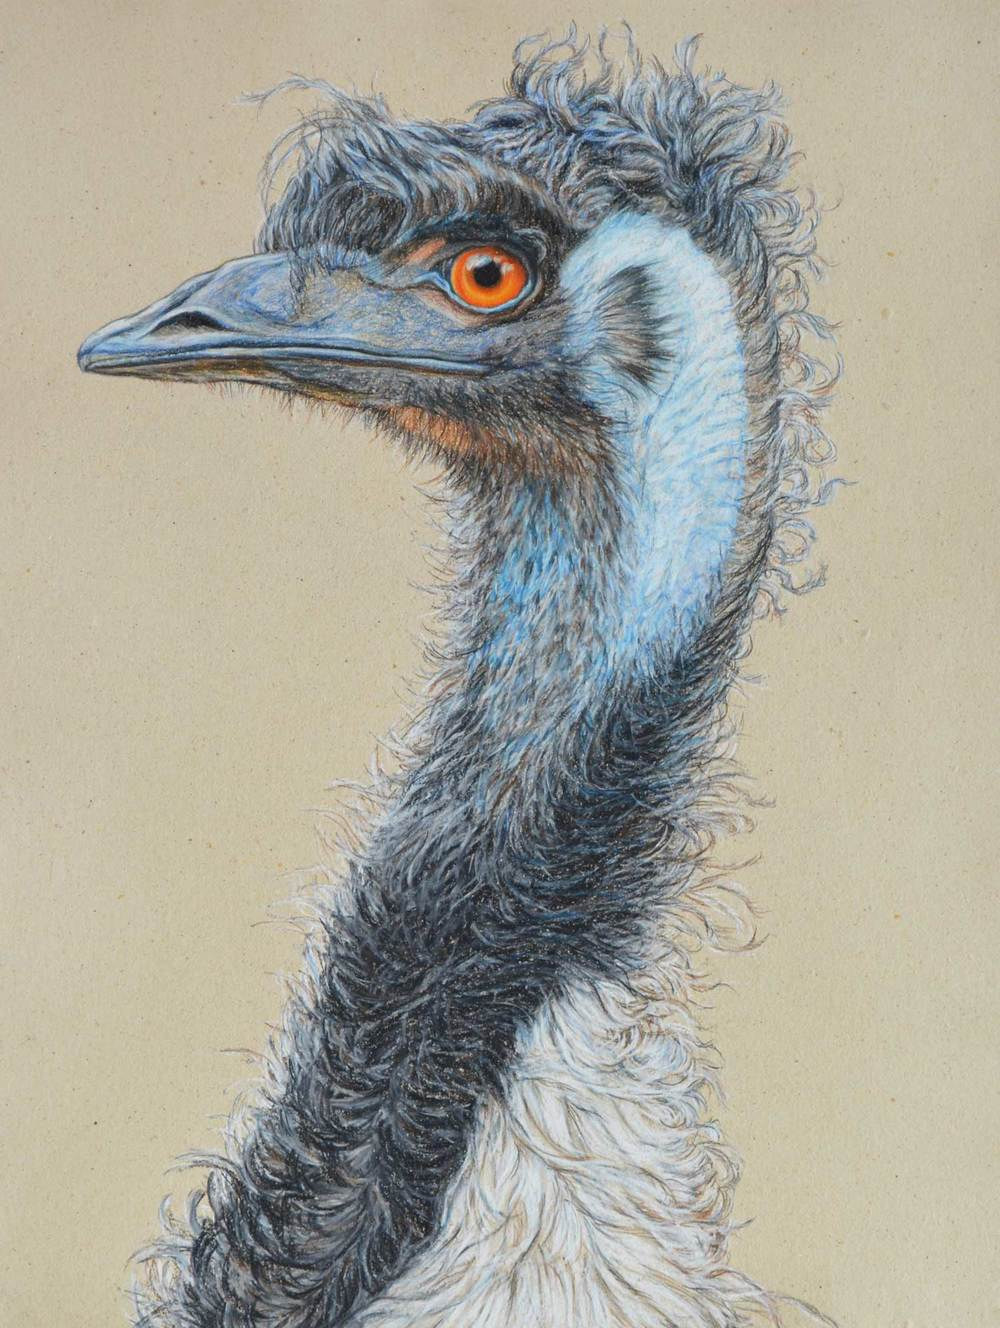 emu-portrait-drawing-rachel-newling.jpg